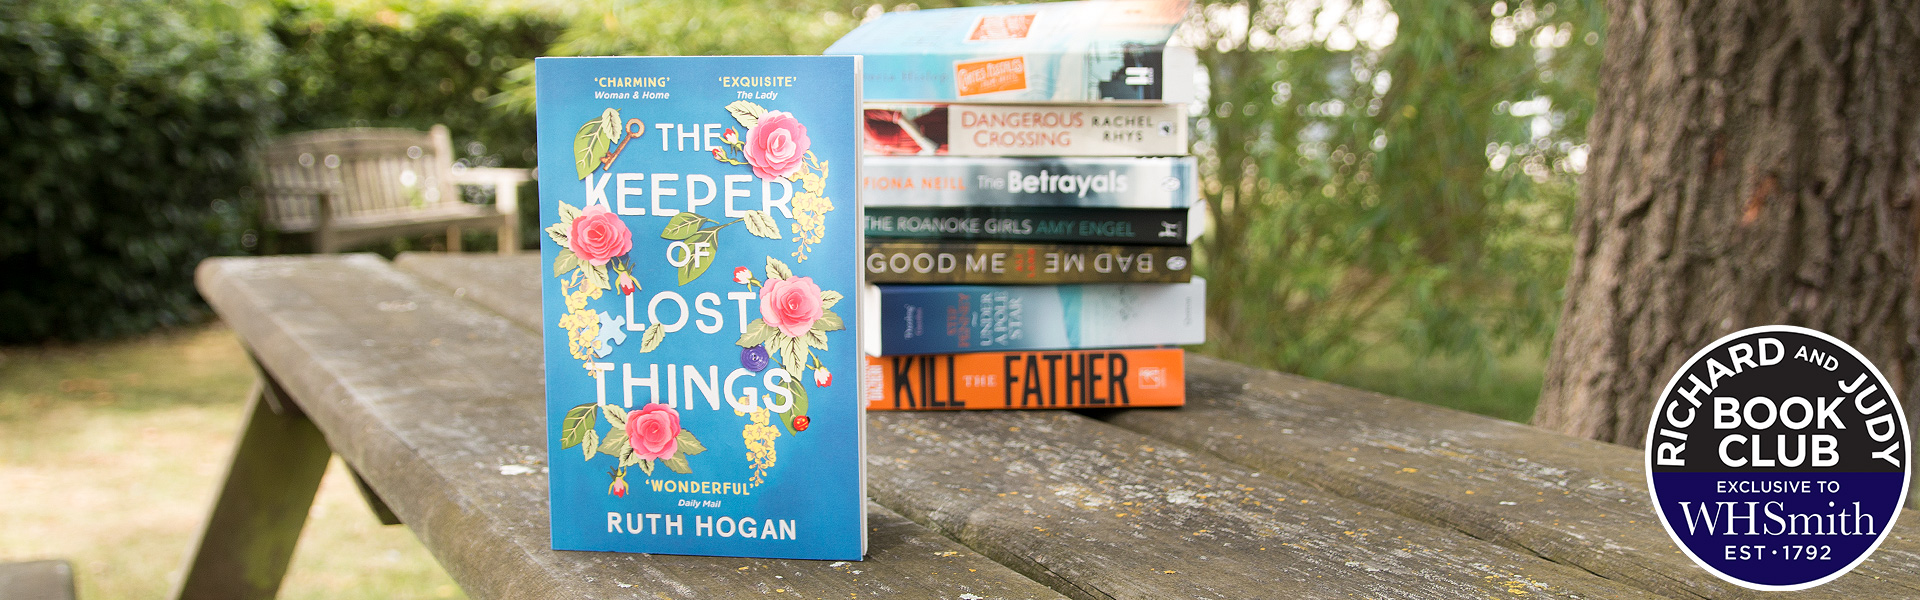 Richard and Judy Introduce The Keeper of Lost Things by Ruth Hogan